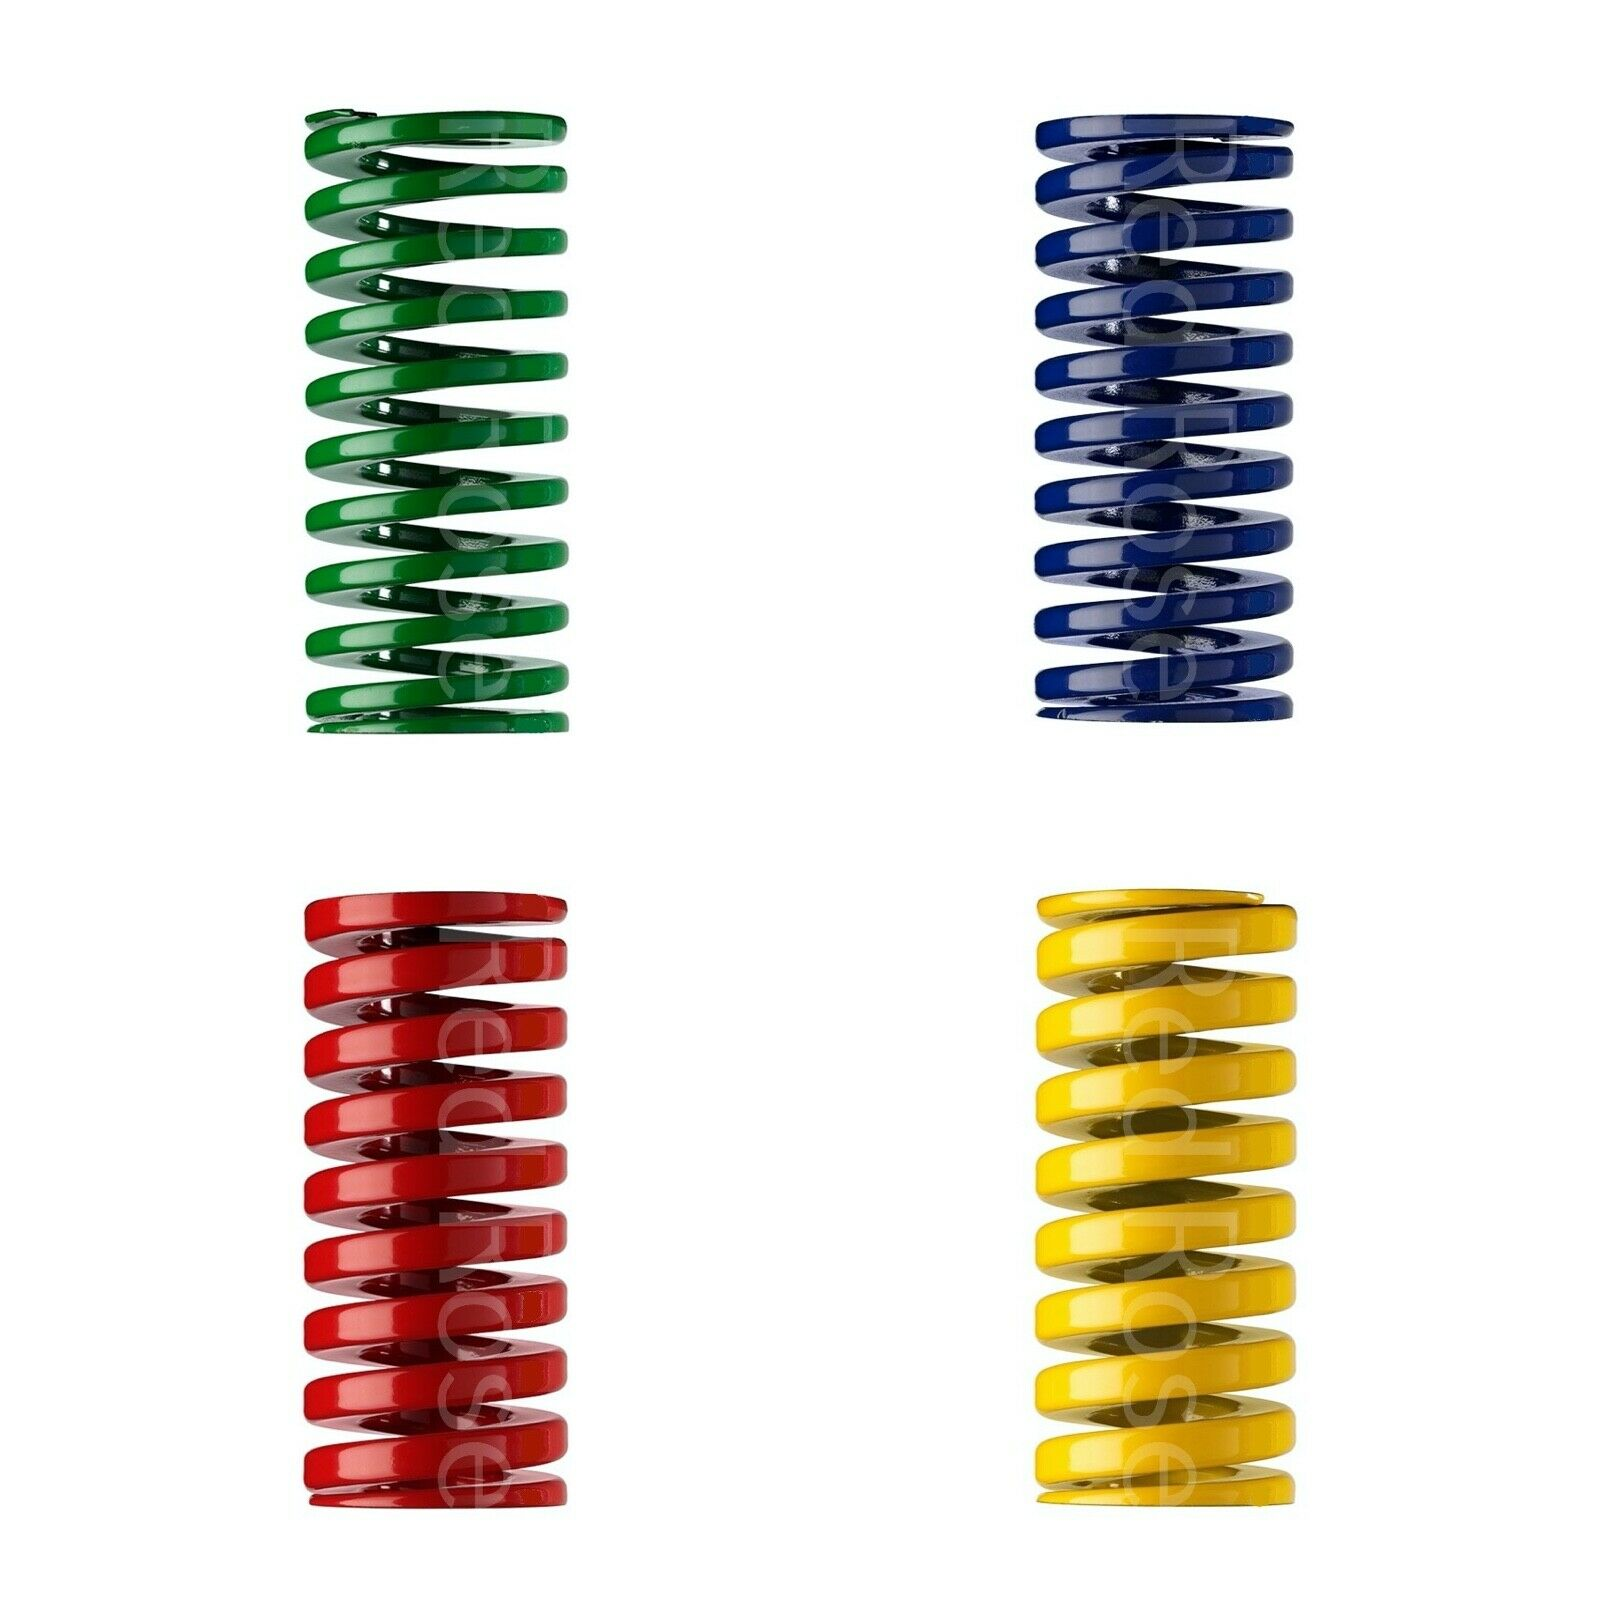 Heavy Load Duty Compression Die Spring ISO - 10-50mm Diameter & Up To 102mm Long